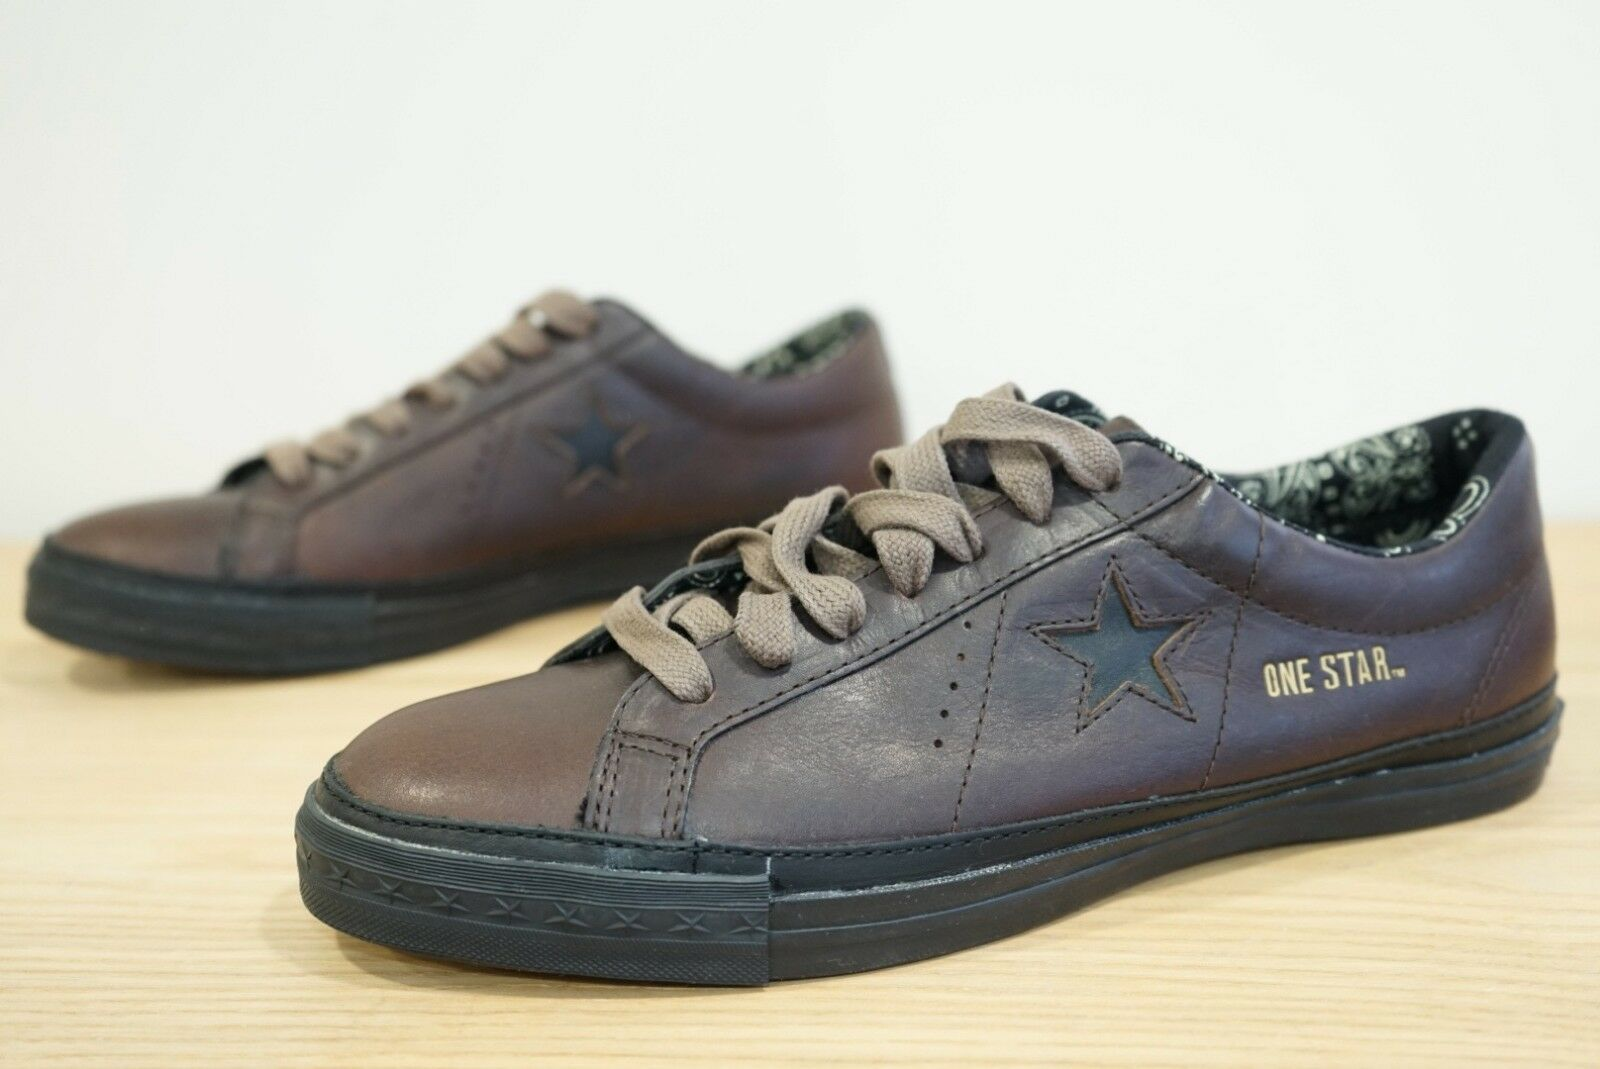 Converse One Star PR Premium Ox Leather 1V943 Trainers Size